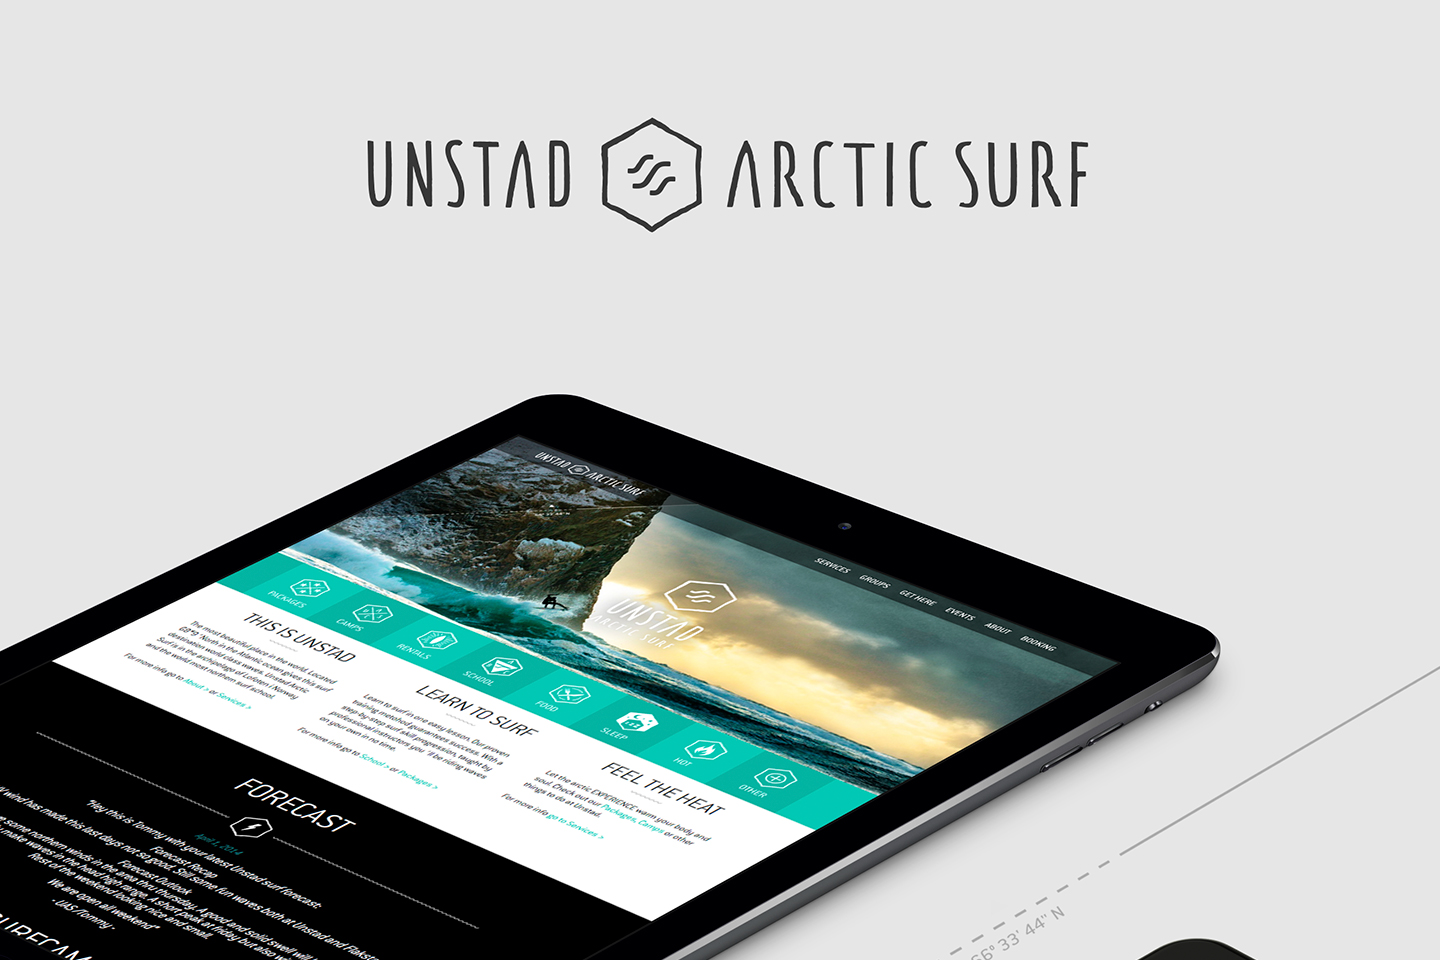 Unstad Arctic Surf logo and ipad